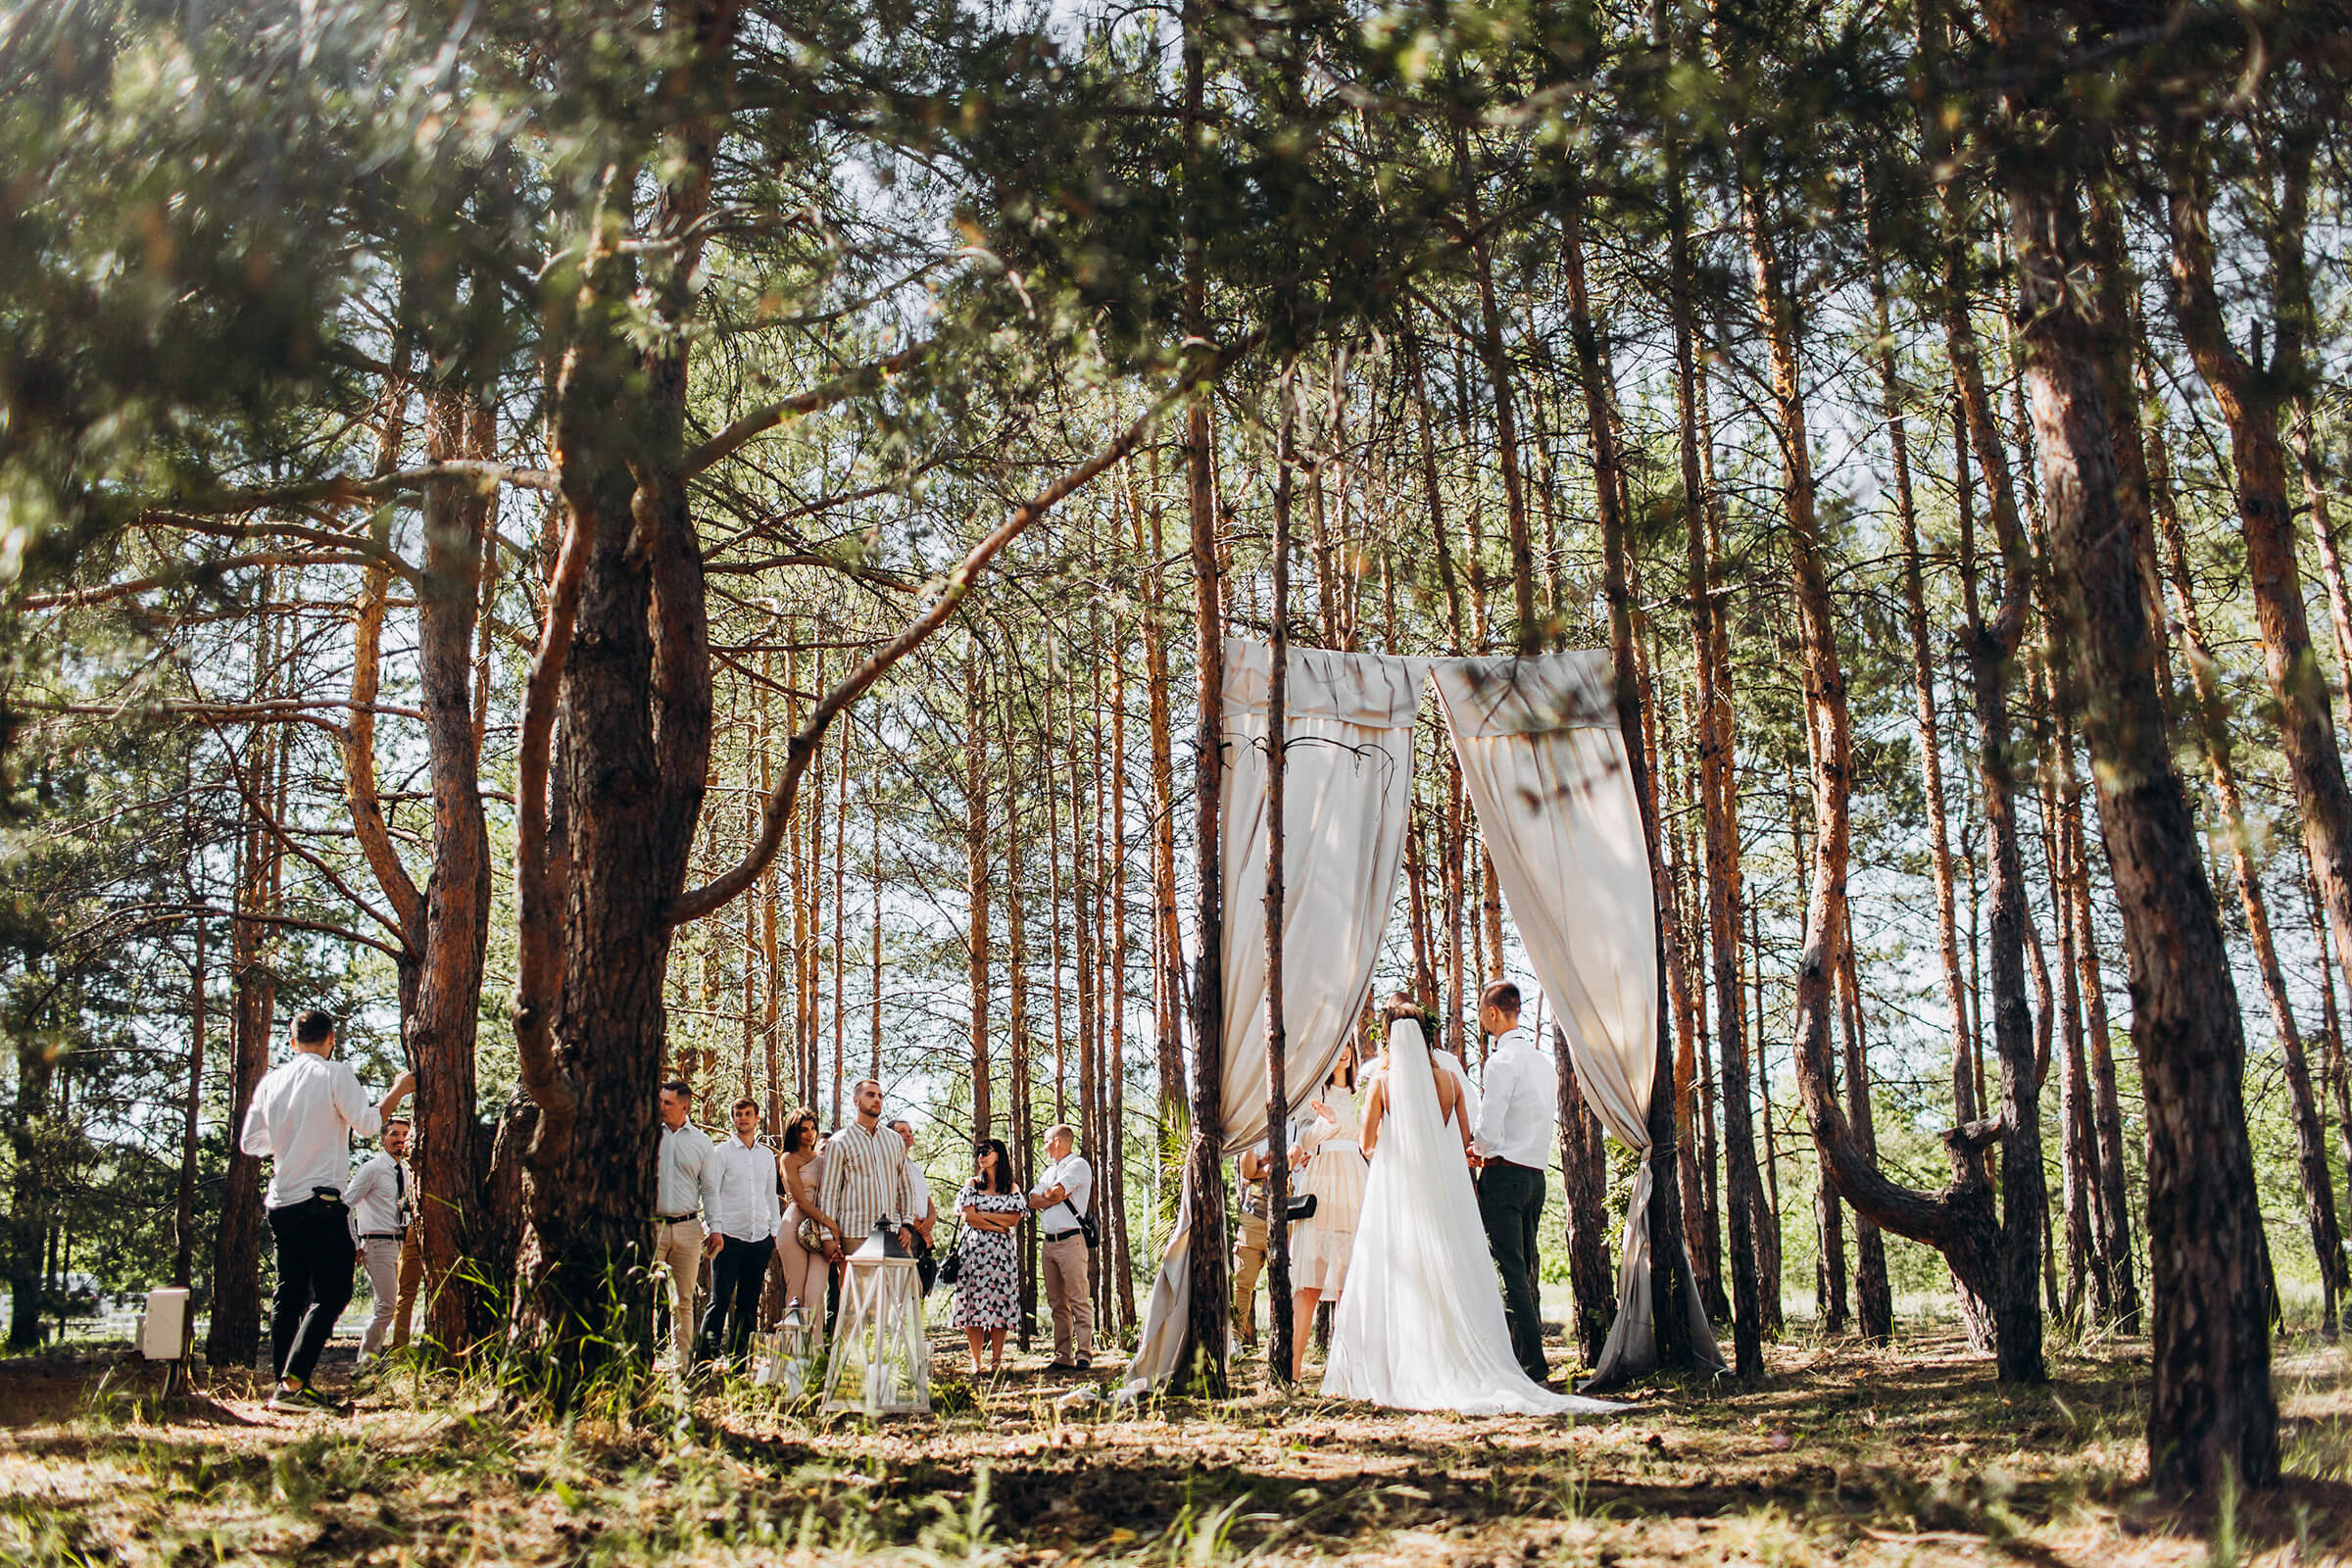 """WEDDING IN THE WOODS"" ДИМА И НАСТЯ фото AD 431"